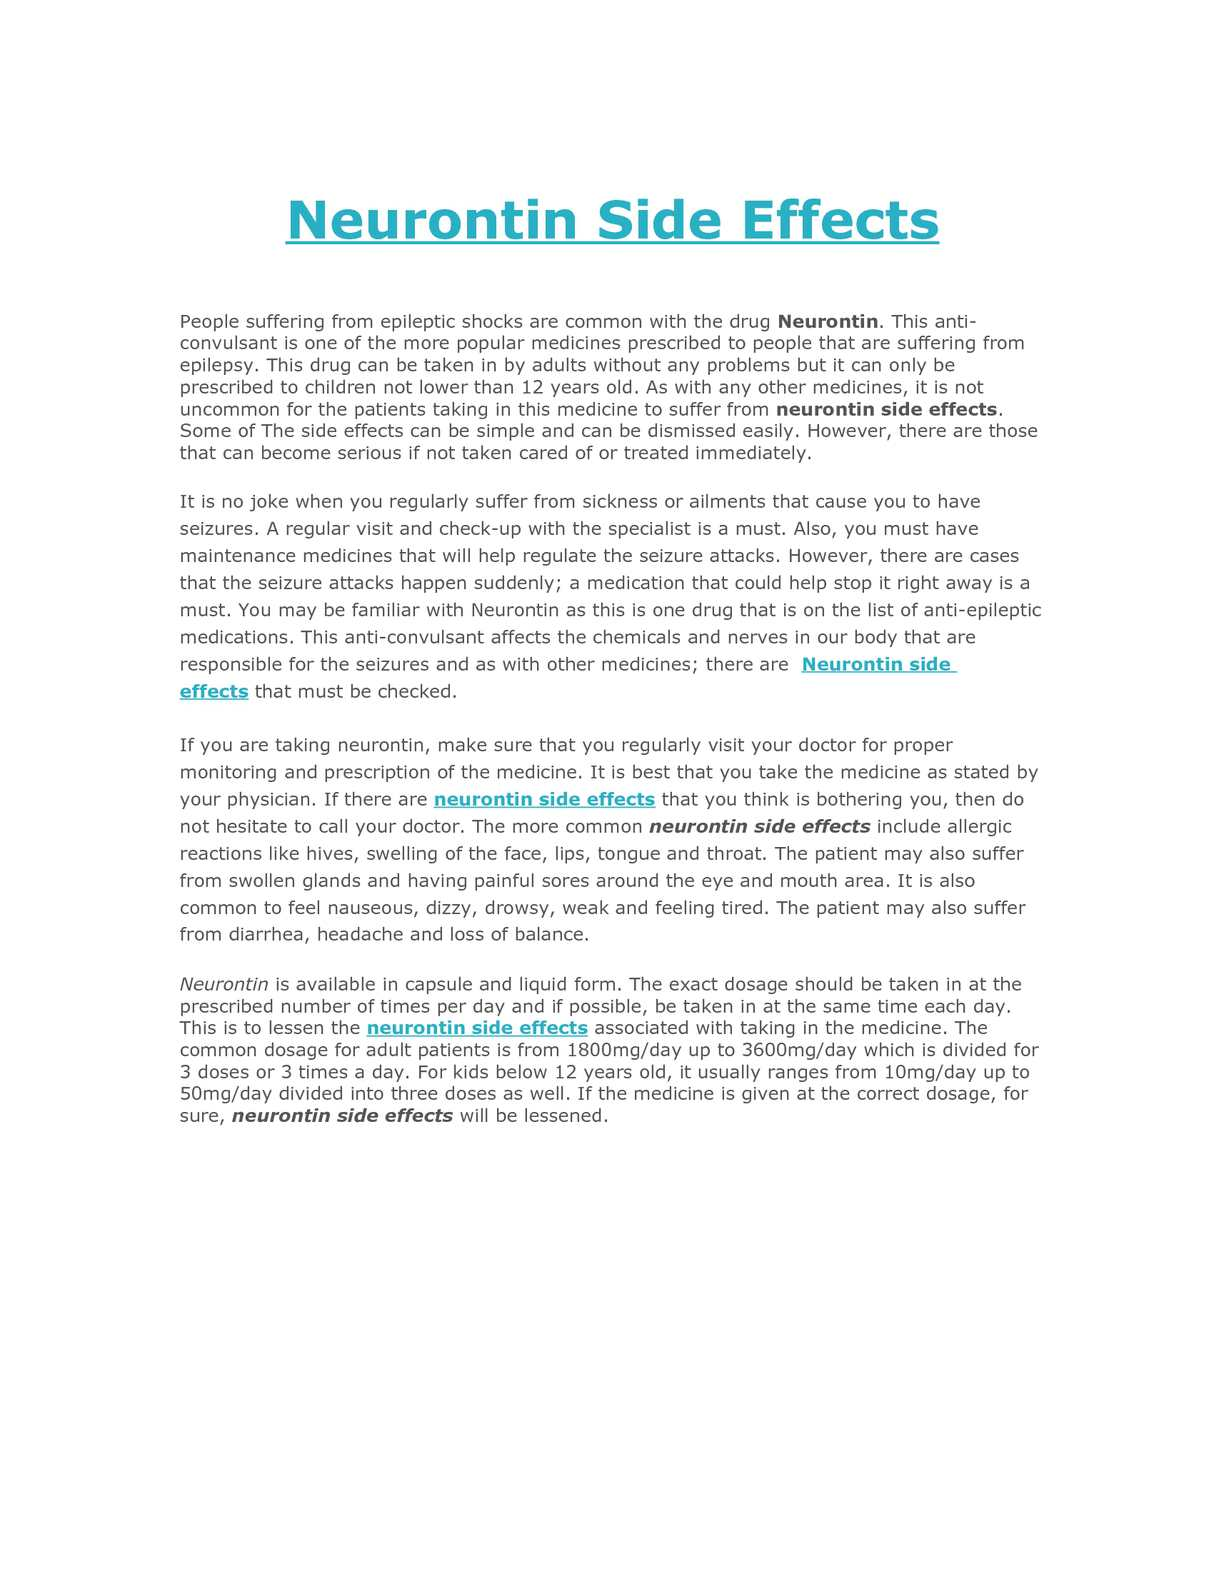 Neurontin Reactions